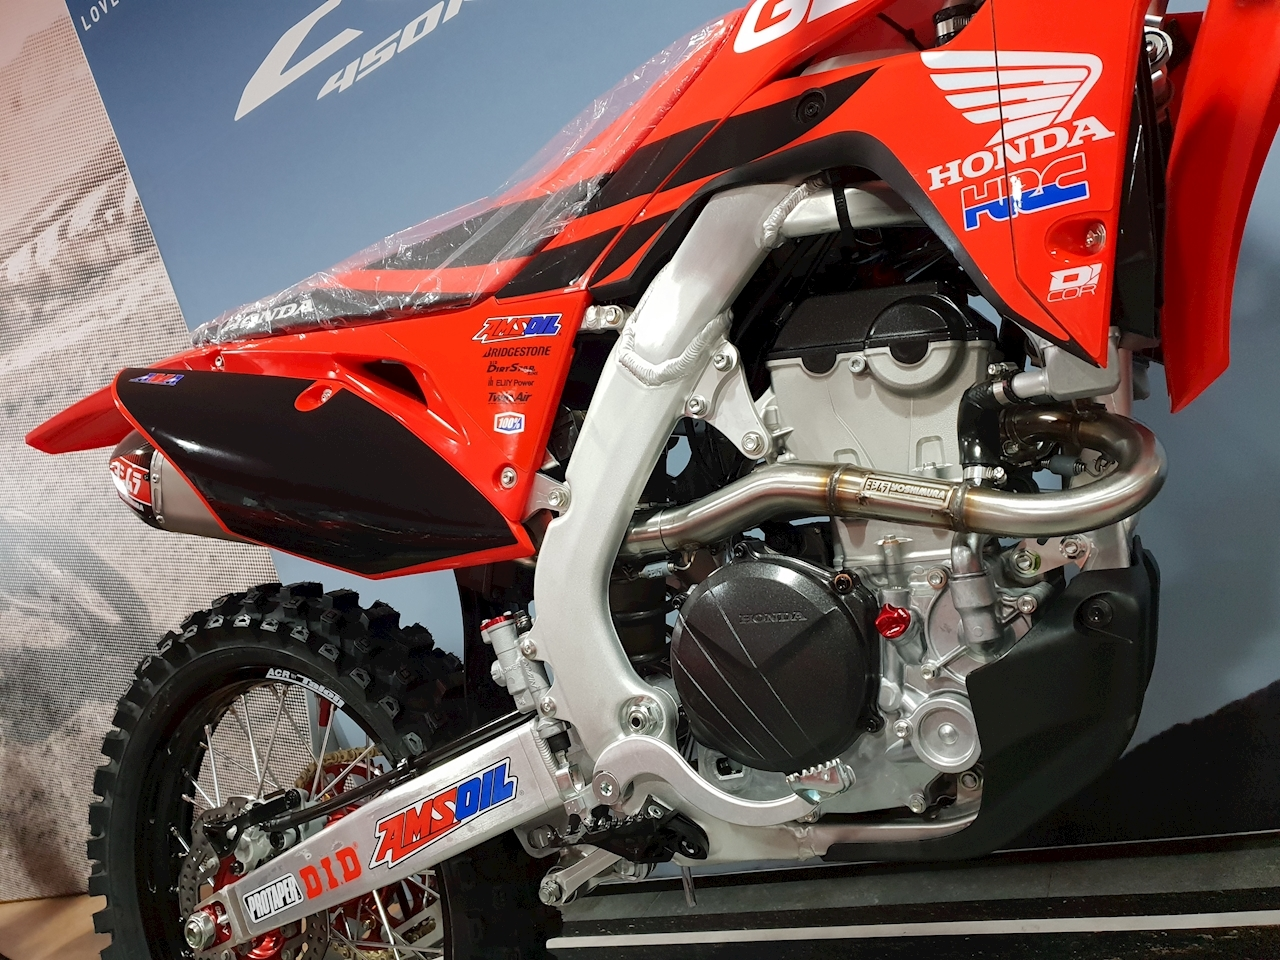 2020 CRF250R GEICO Motocross Honda Off-Road 250 Manual Petrol